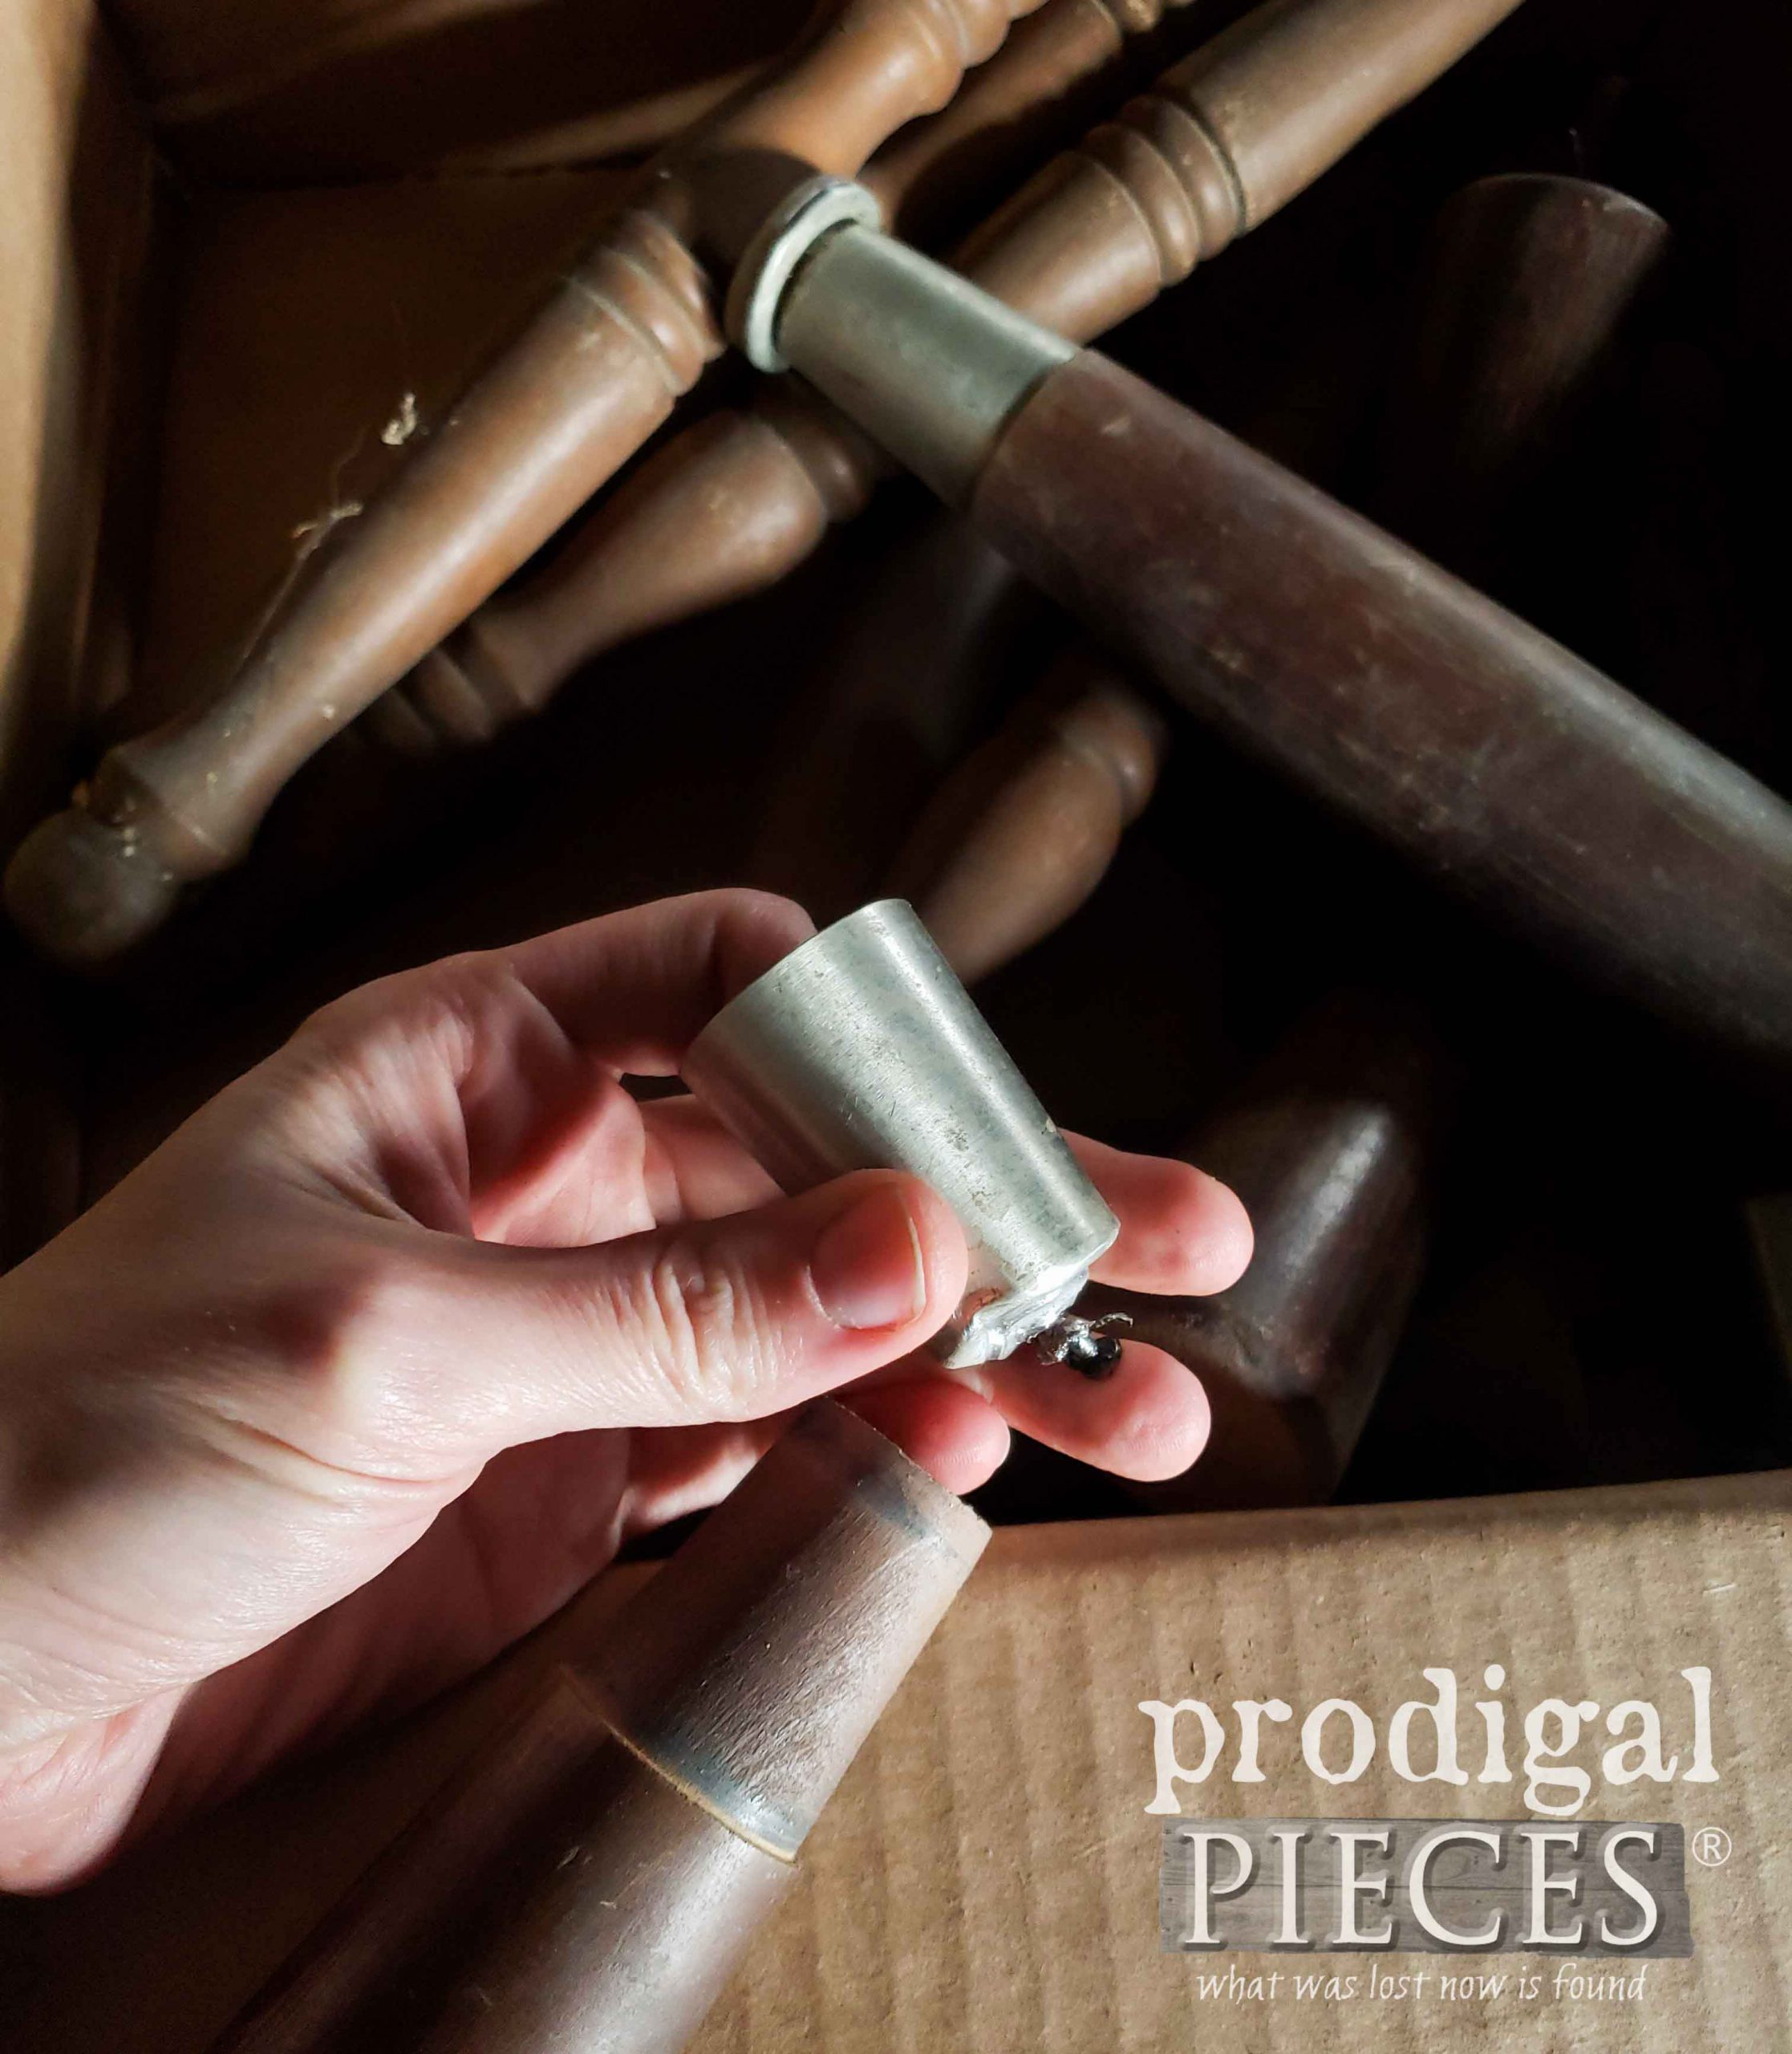 Removing Furniture Leg Cap to Create DIY Rustic Carrots | prodigalpieces.com